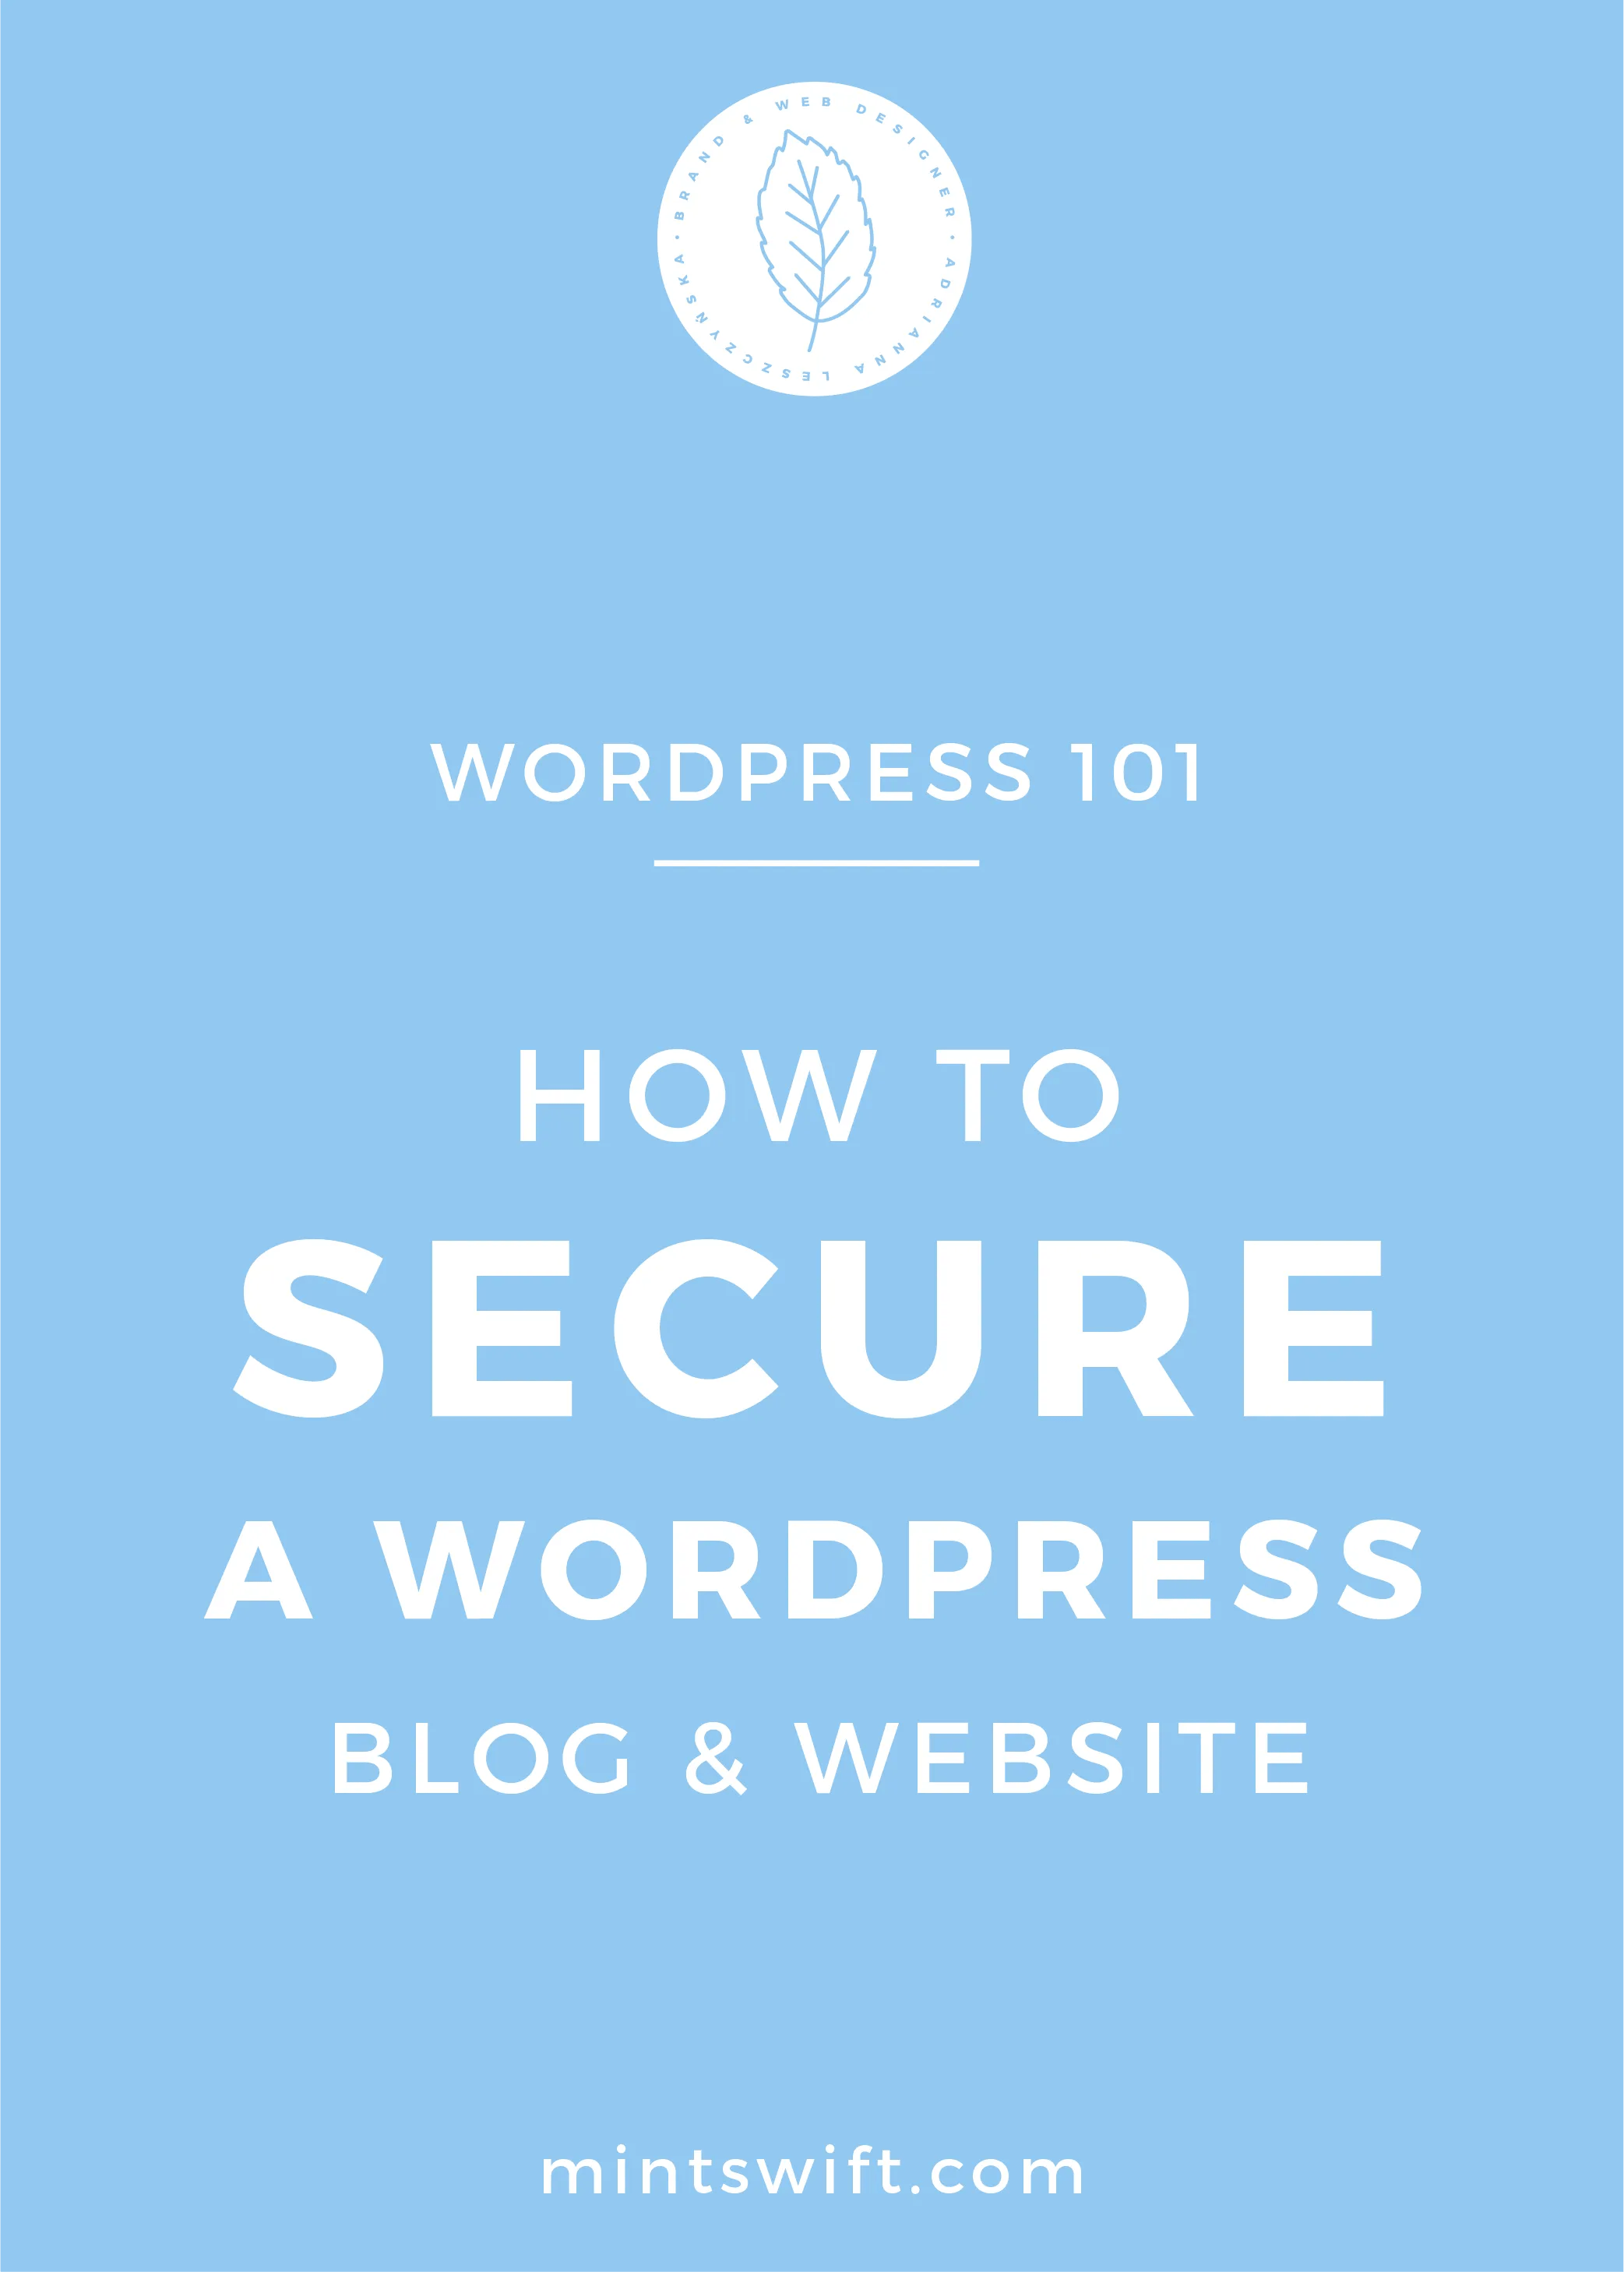 How to Secure WordPress Blog & Website - MintSwift